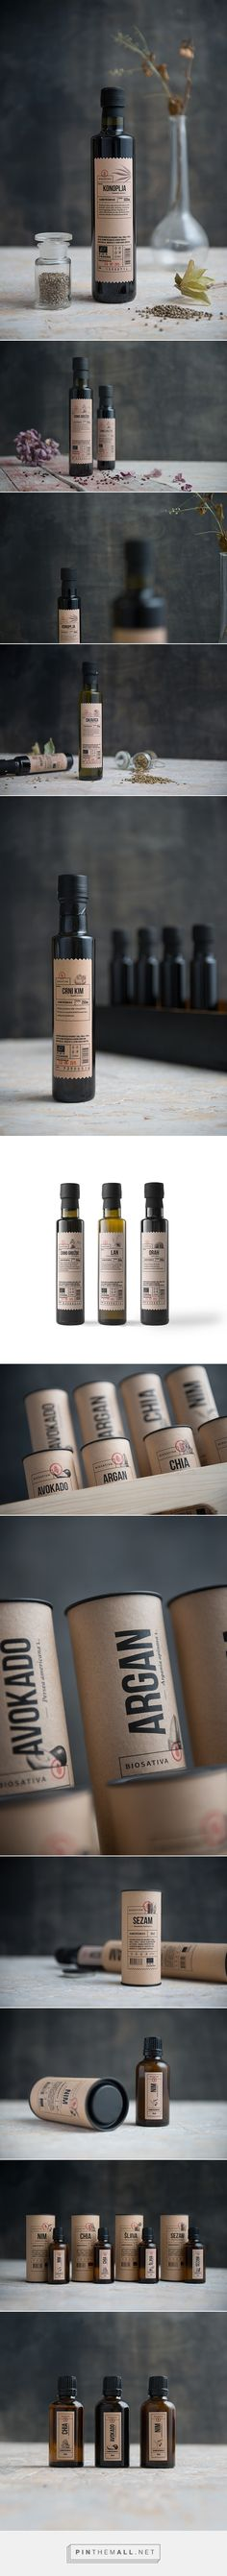 Biosativa | Oil Packaging by Negra Nigoevic